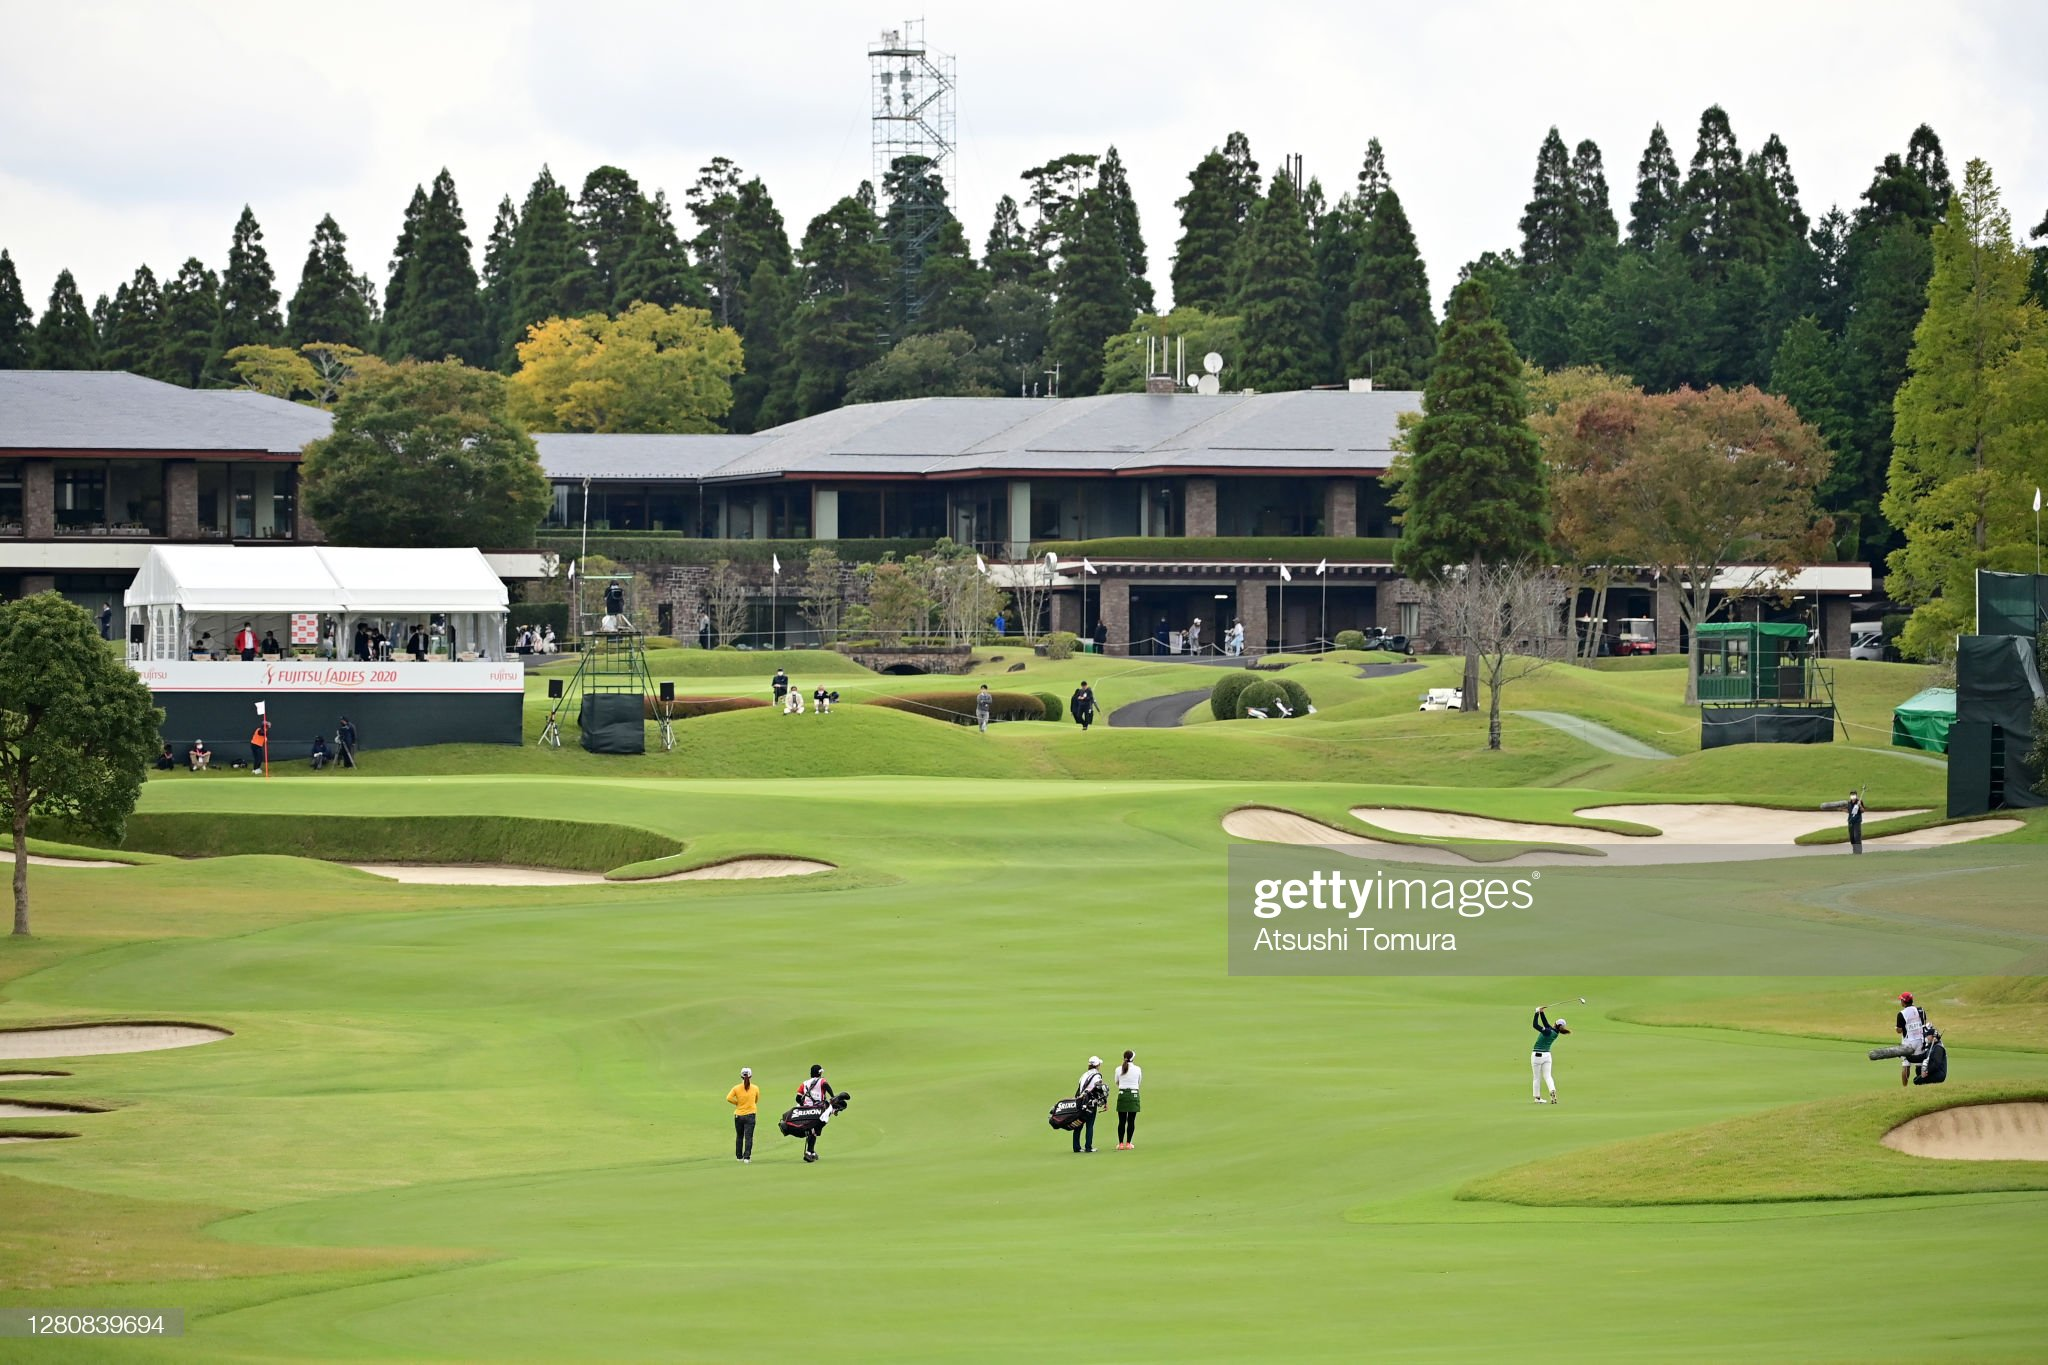 https://media.gettyimages.com/photos/yuna-nishimura-of-japan-hits-her-second-shot-on-the-18th-hole-during-picture-id1280839694?s=2048x2048